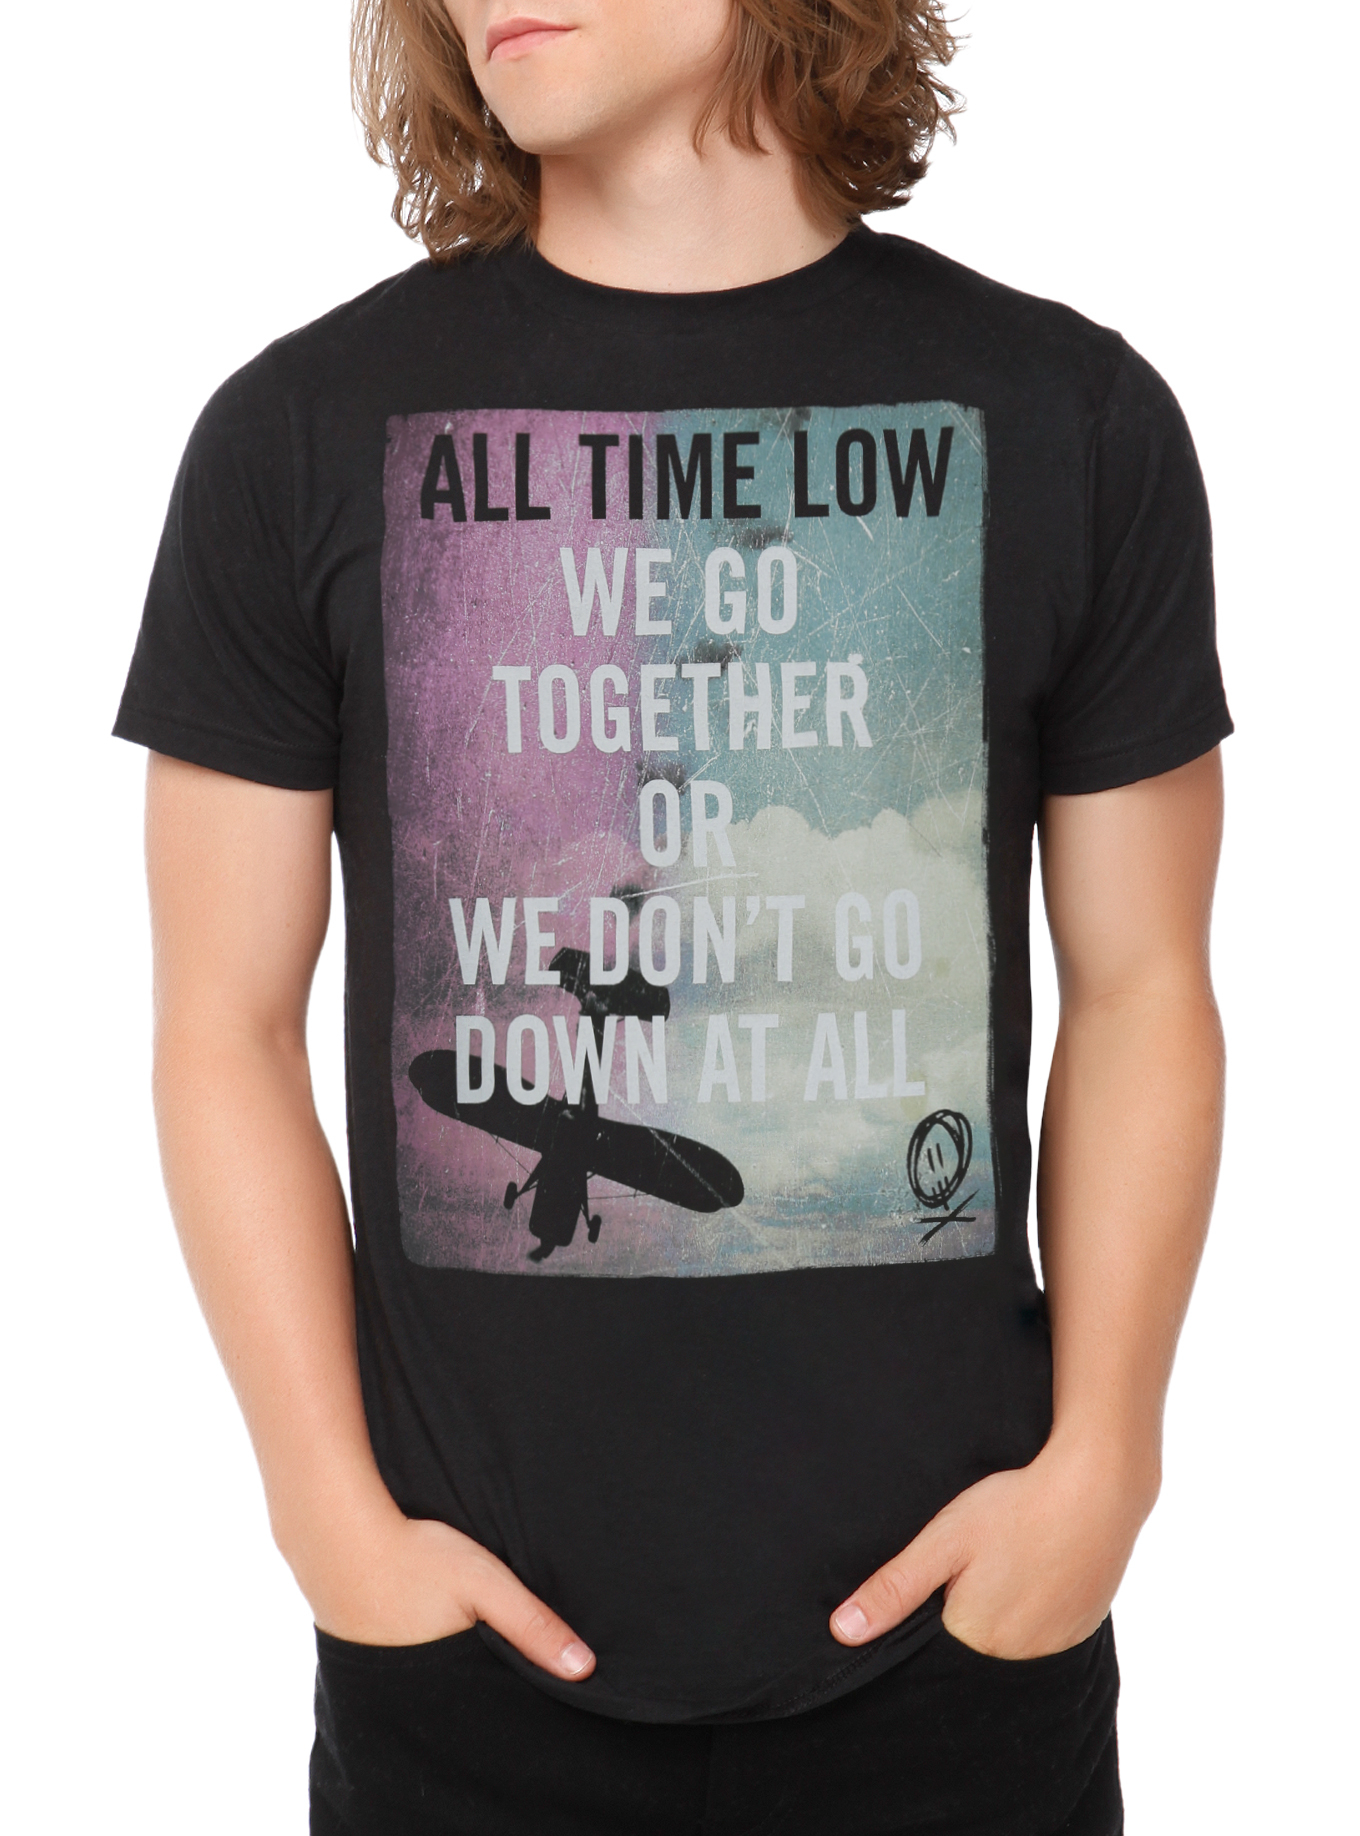 All time low down t